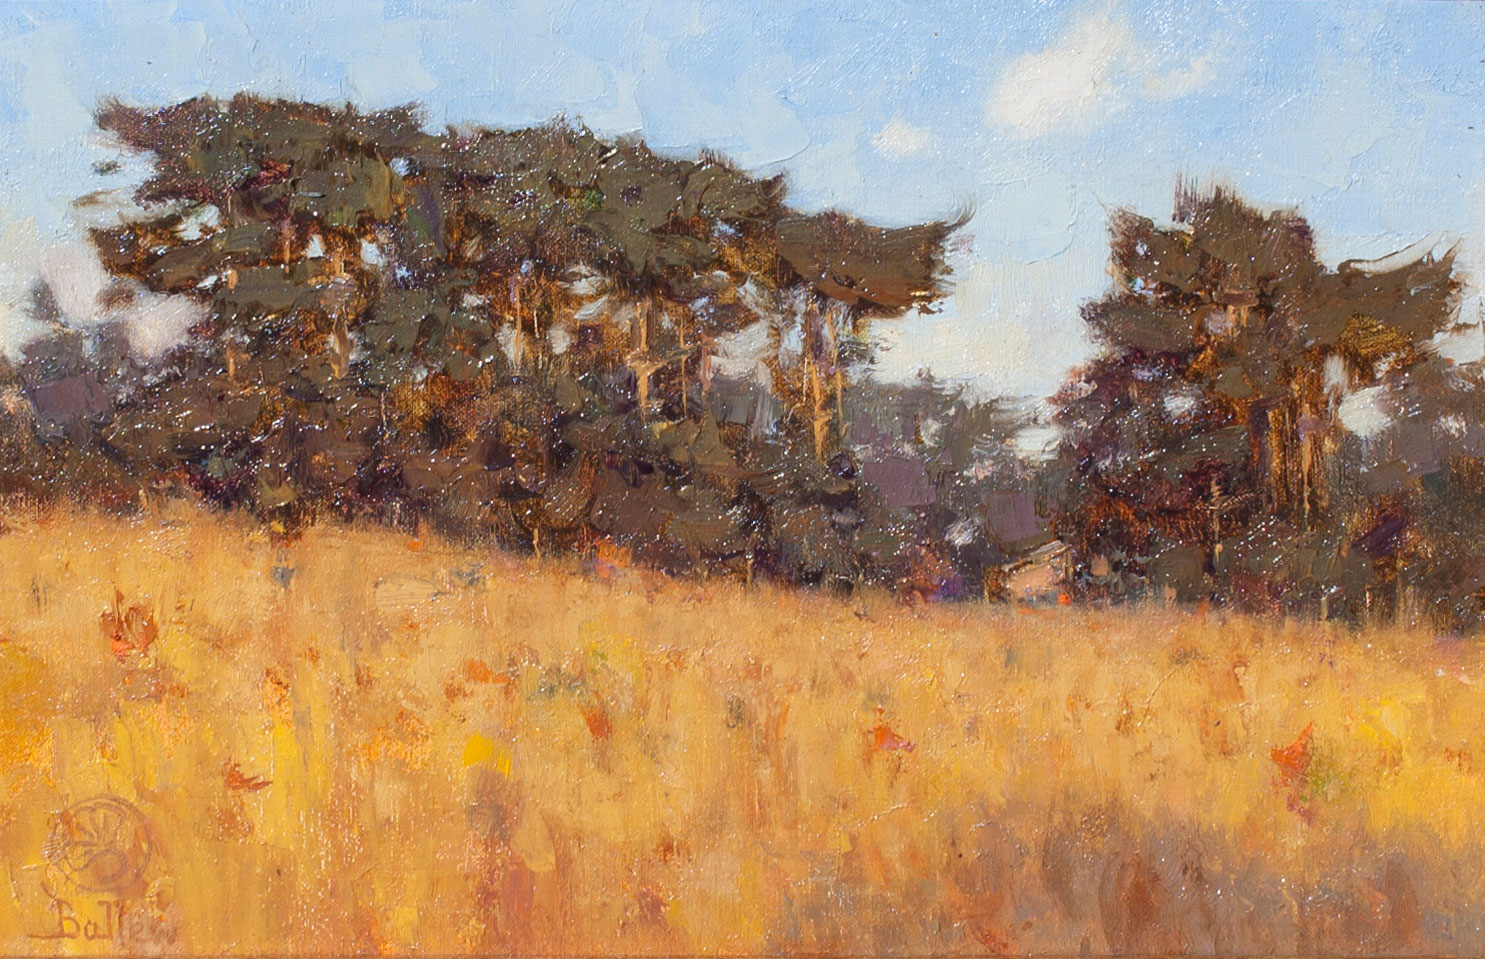 hillside_cypress_california_david_ballew